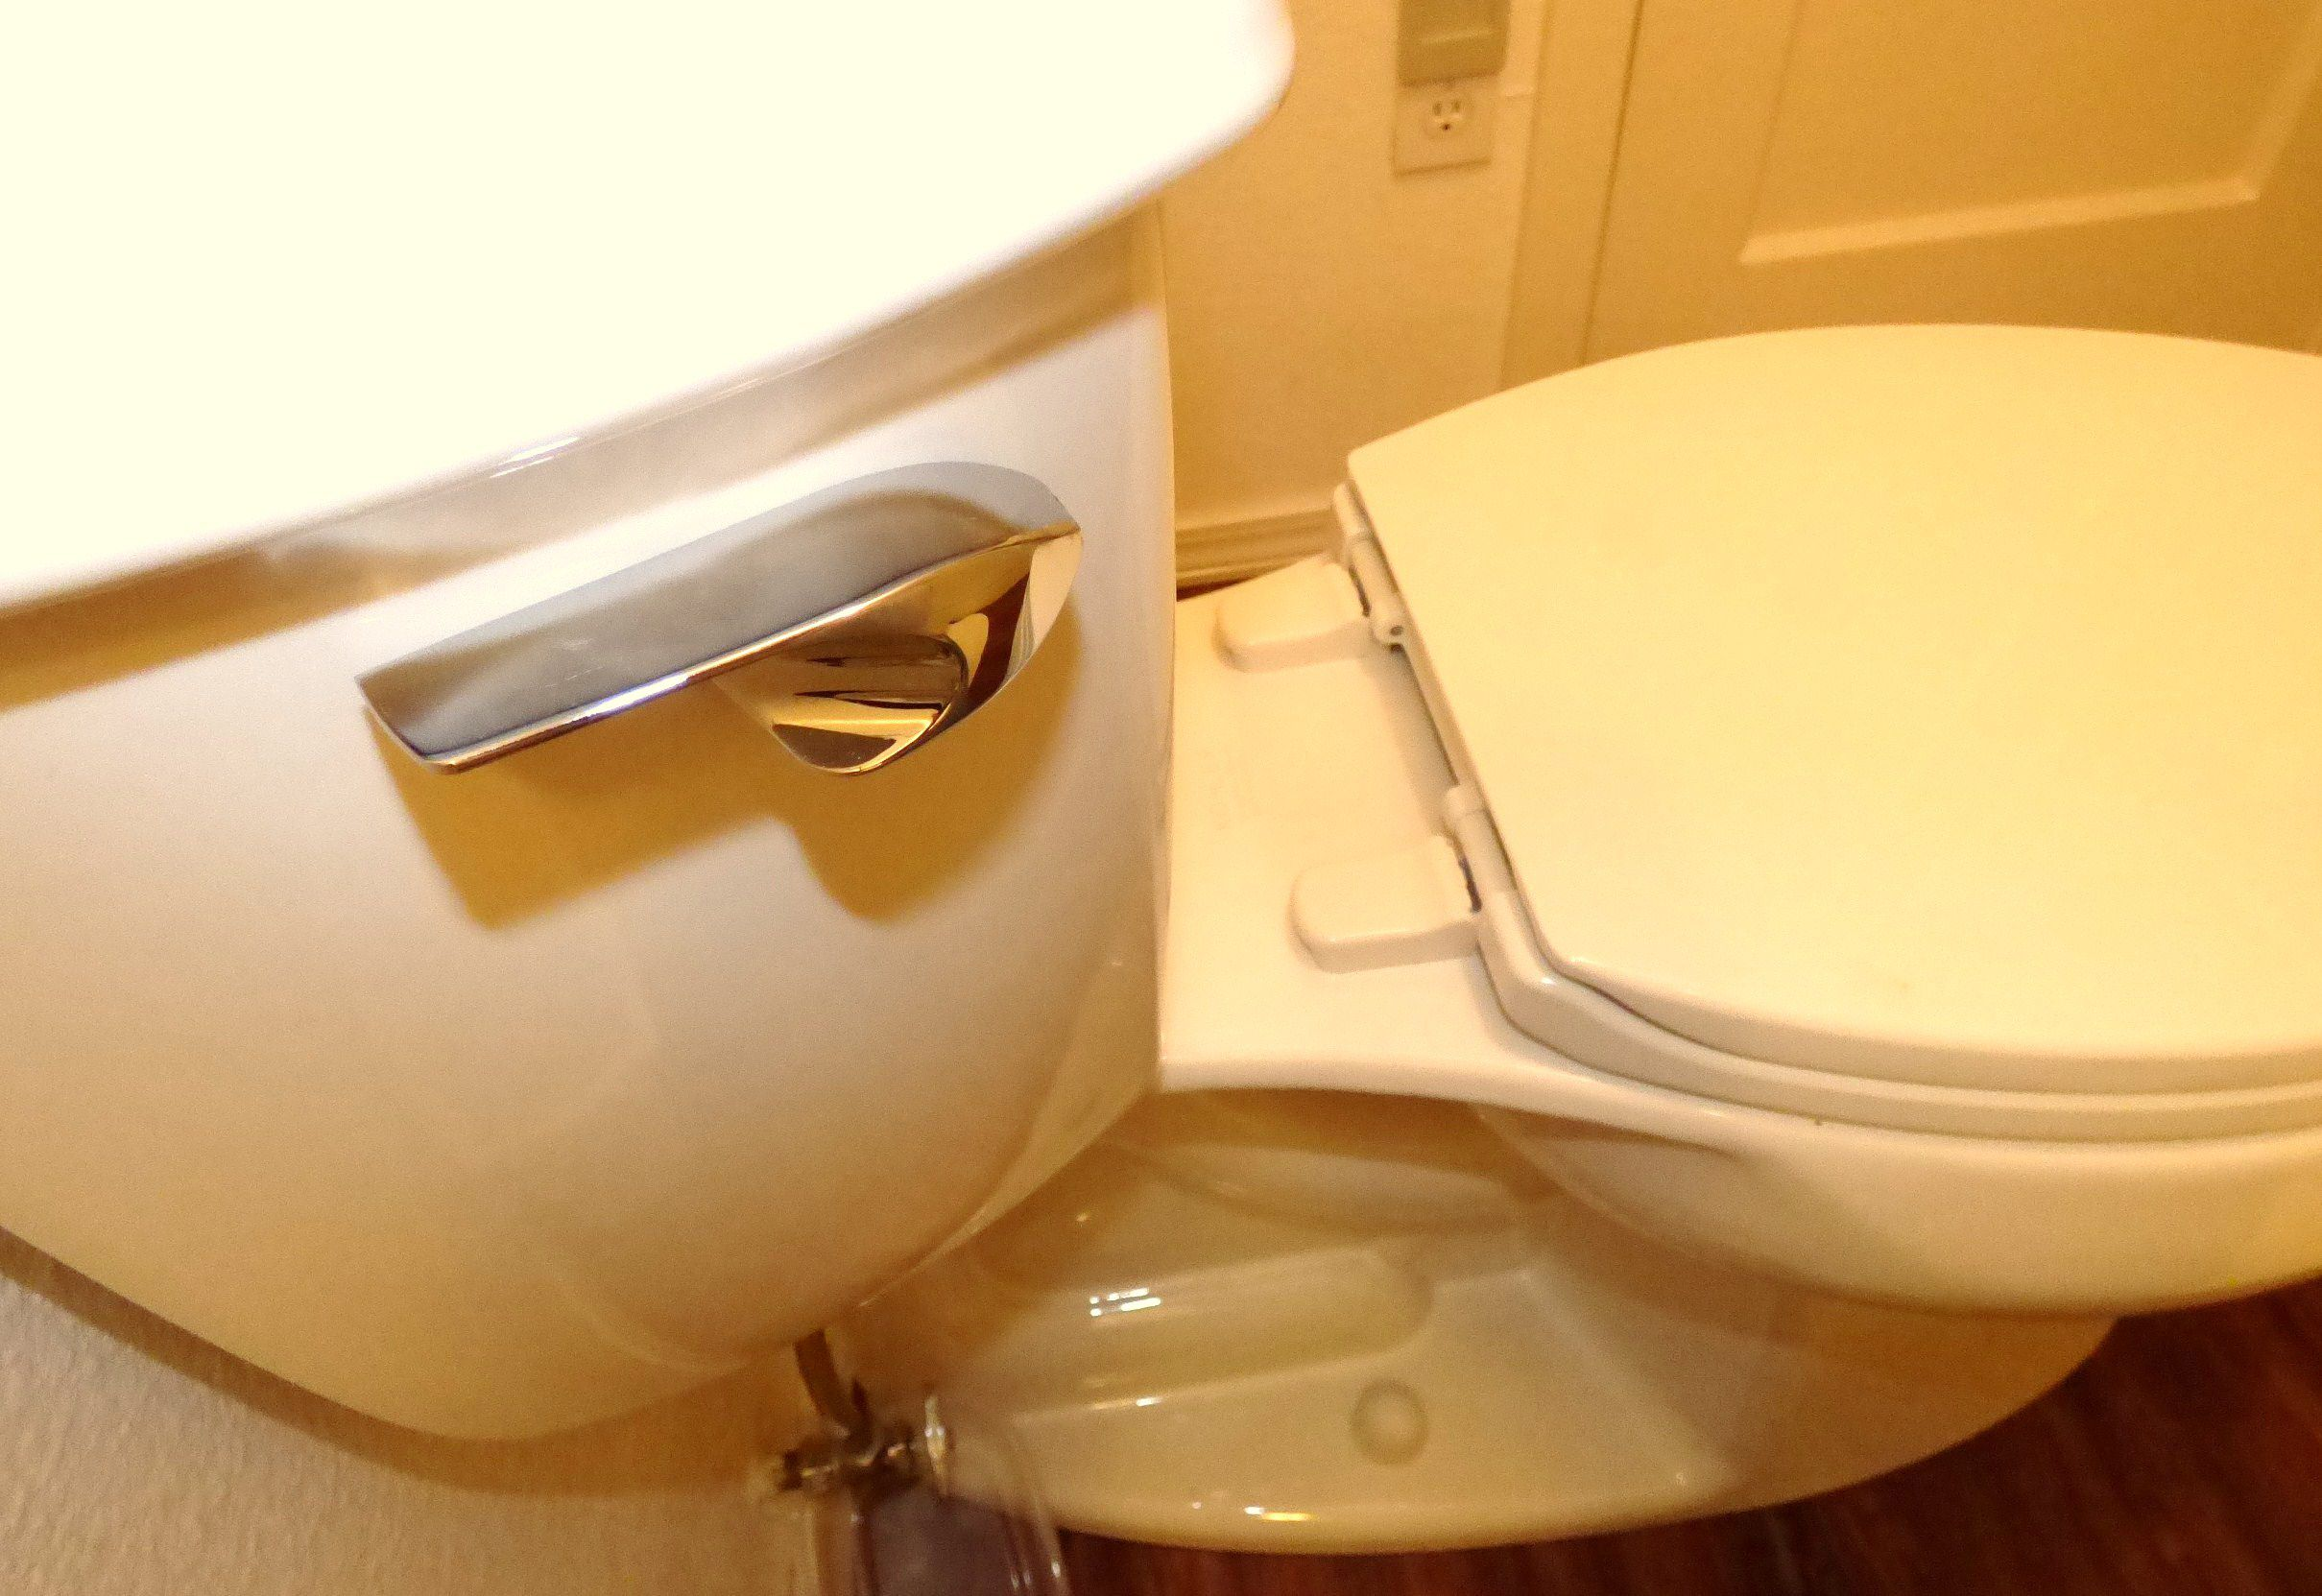 most comfortable toilet seat. Kohler Highline Toilet Is Cheap and Available  But Does It Work 11 Features to Avoid When Buying a New